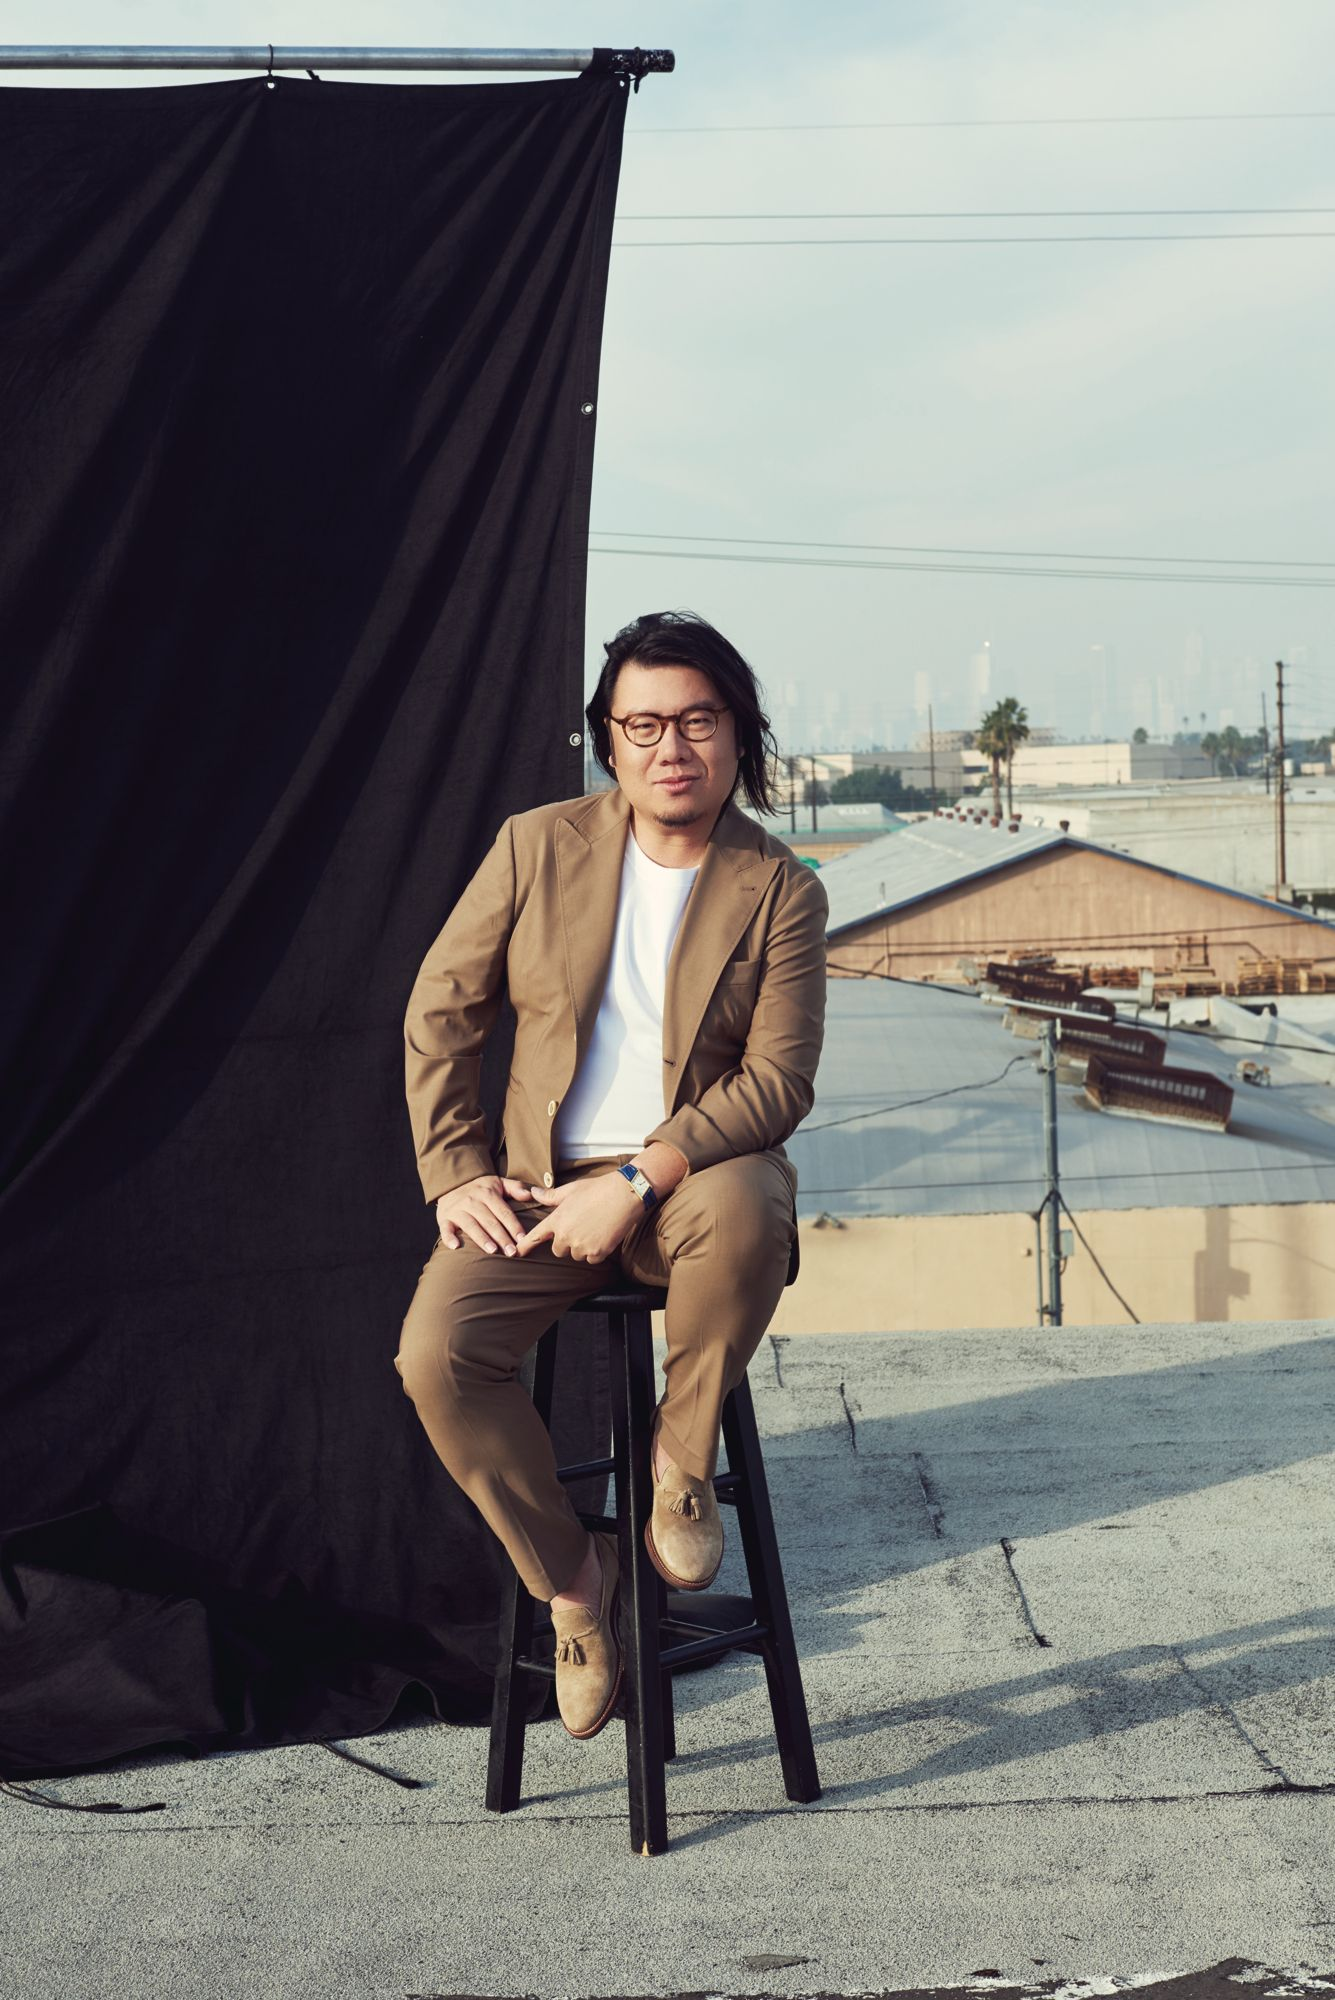 Crazy Rich Asians' Kevin Kwan On His New Book, Sex And Vanity